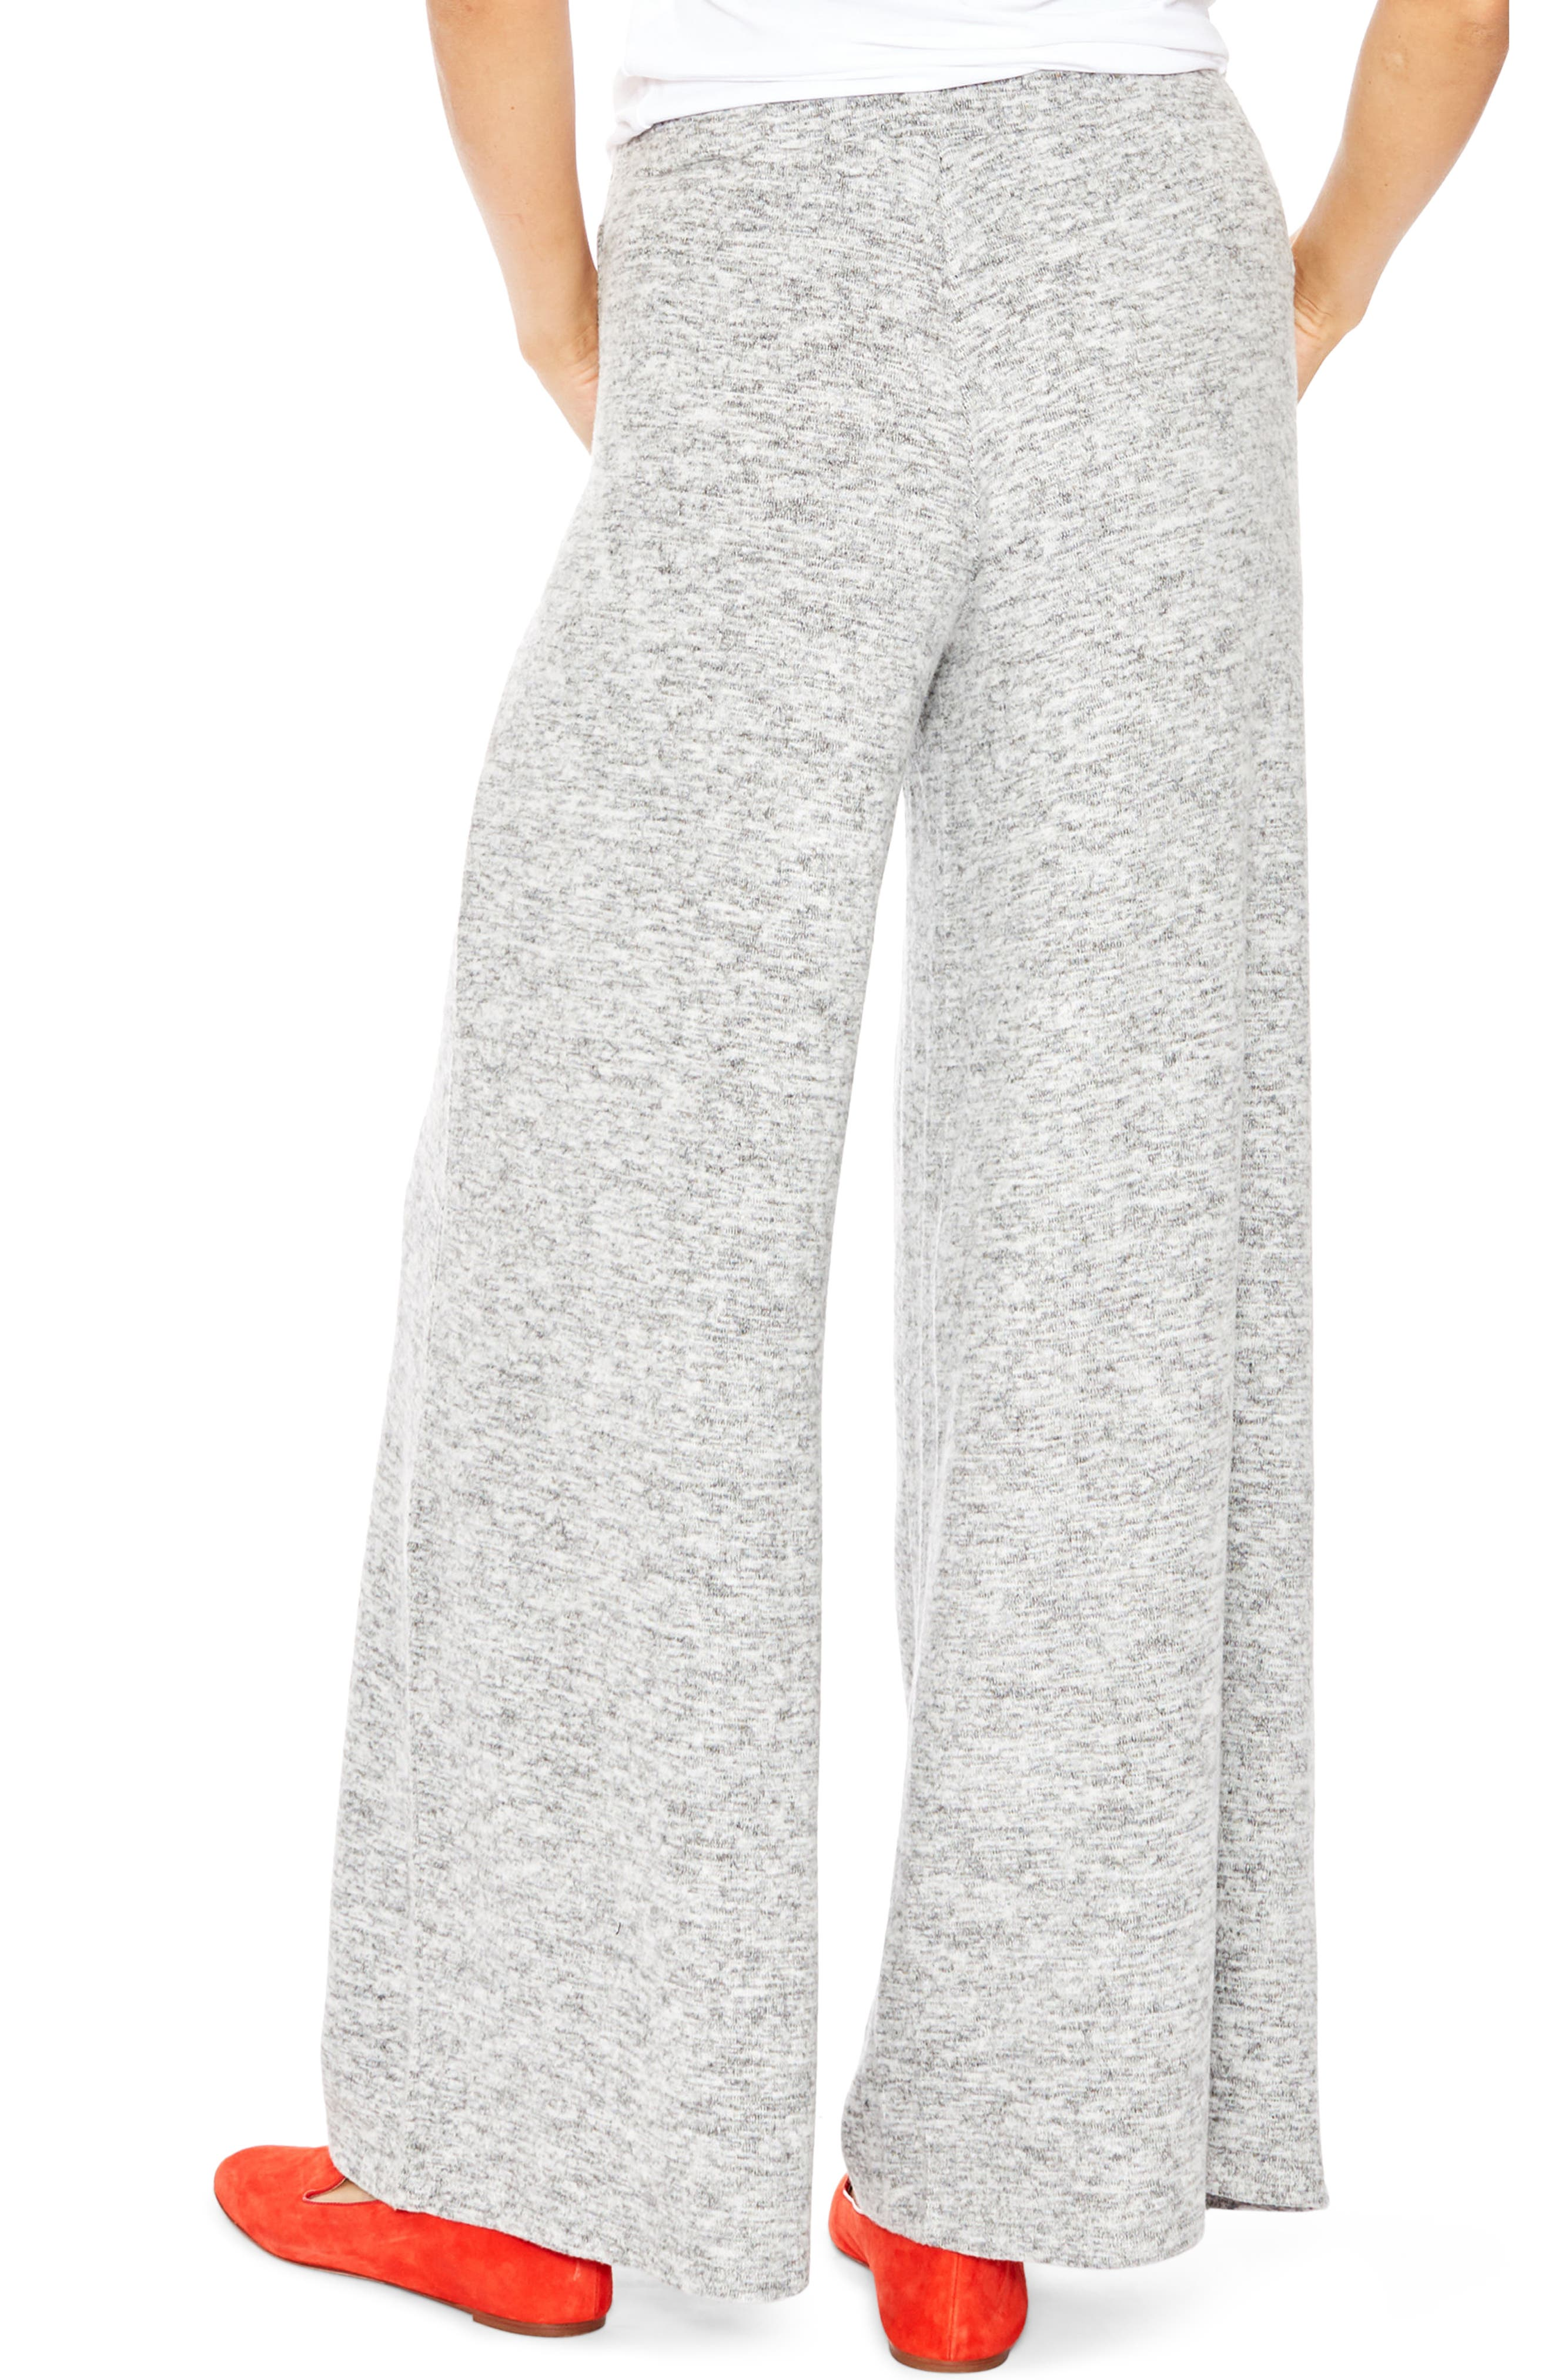 Riley Maternity Sweatpants,                             Alternate thumbnail 2, color,                             GREY MELANGE